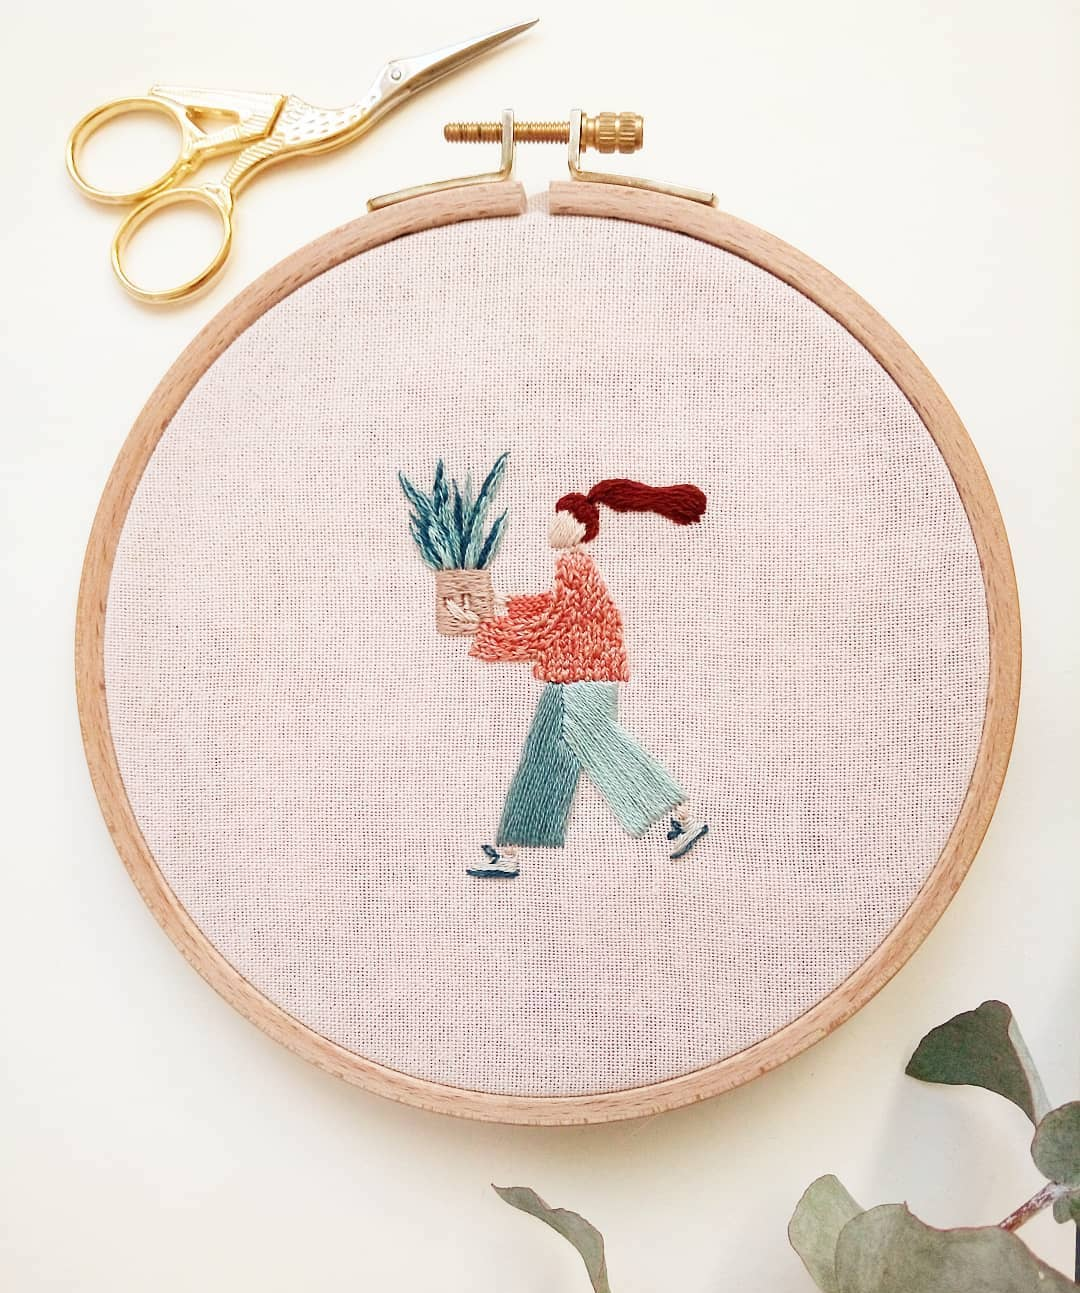 hand embroideries depict proud